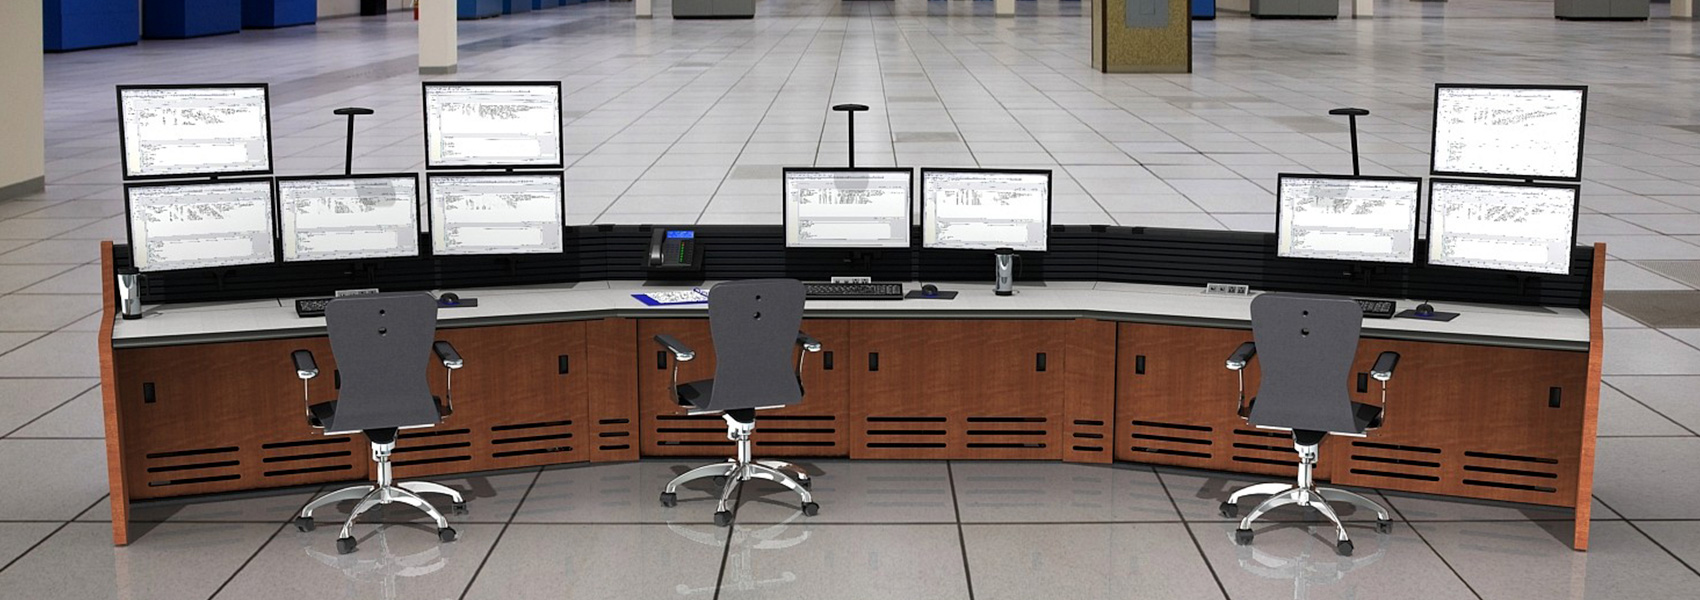 summit-enterprise-control-room-furniture-main-1700x500